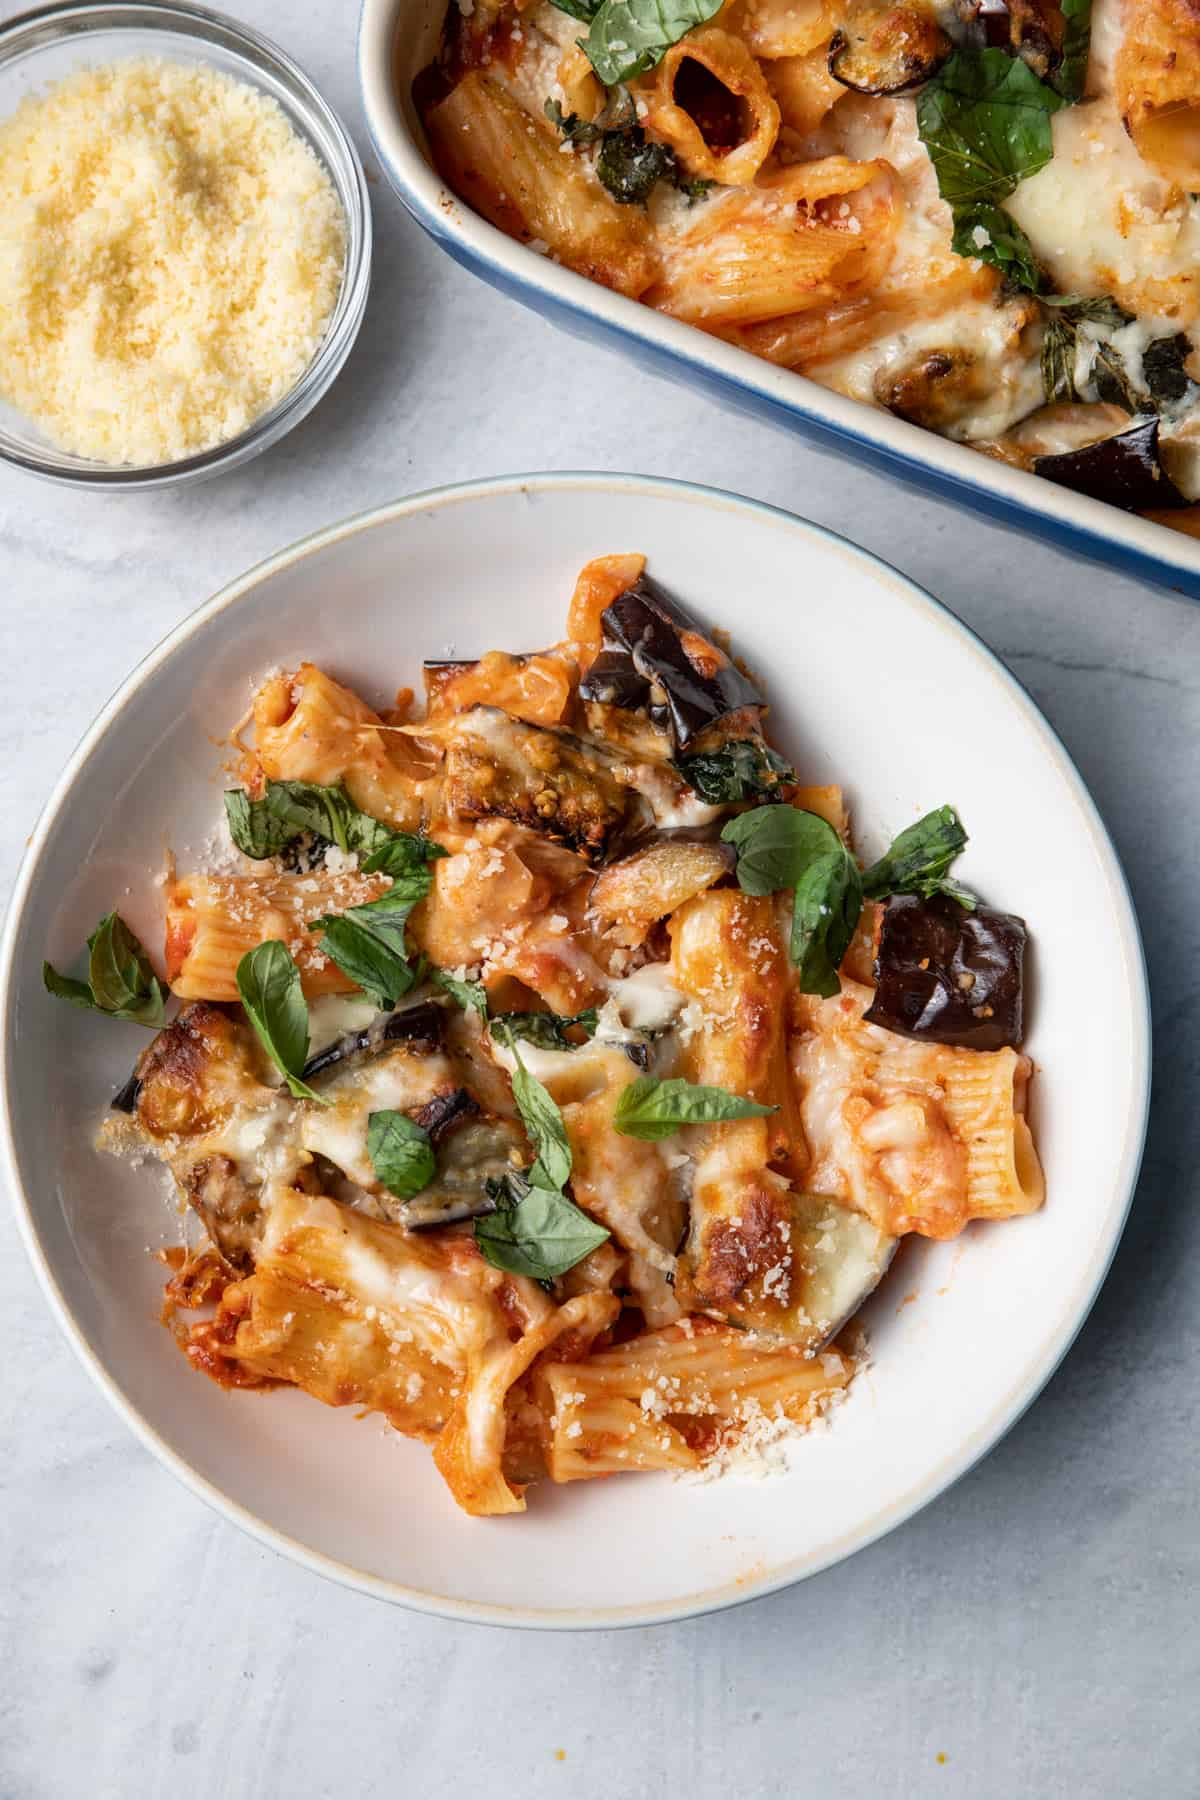 Eggplant pasta casserole served in a small bowl with parmesan cheese on the side